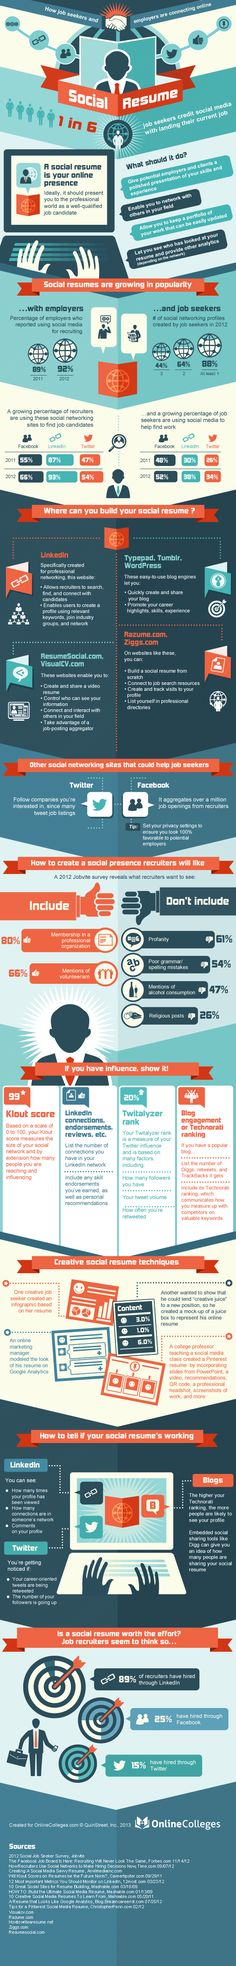 "Why You Must Be ""Socially Active"" To Get A Job [INFOGRAPHIC]"